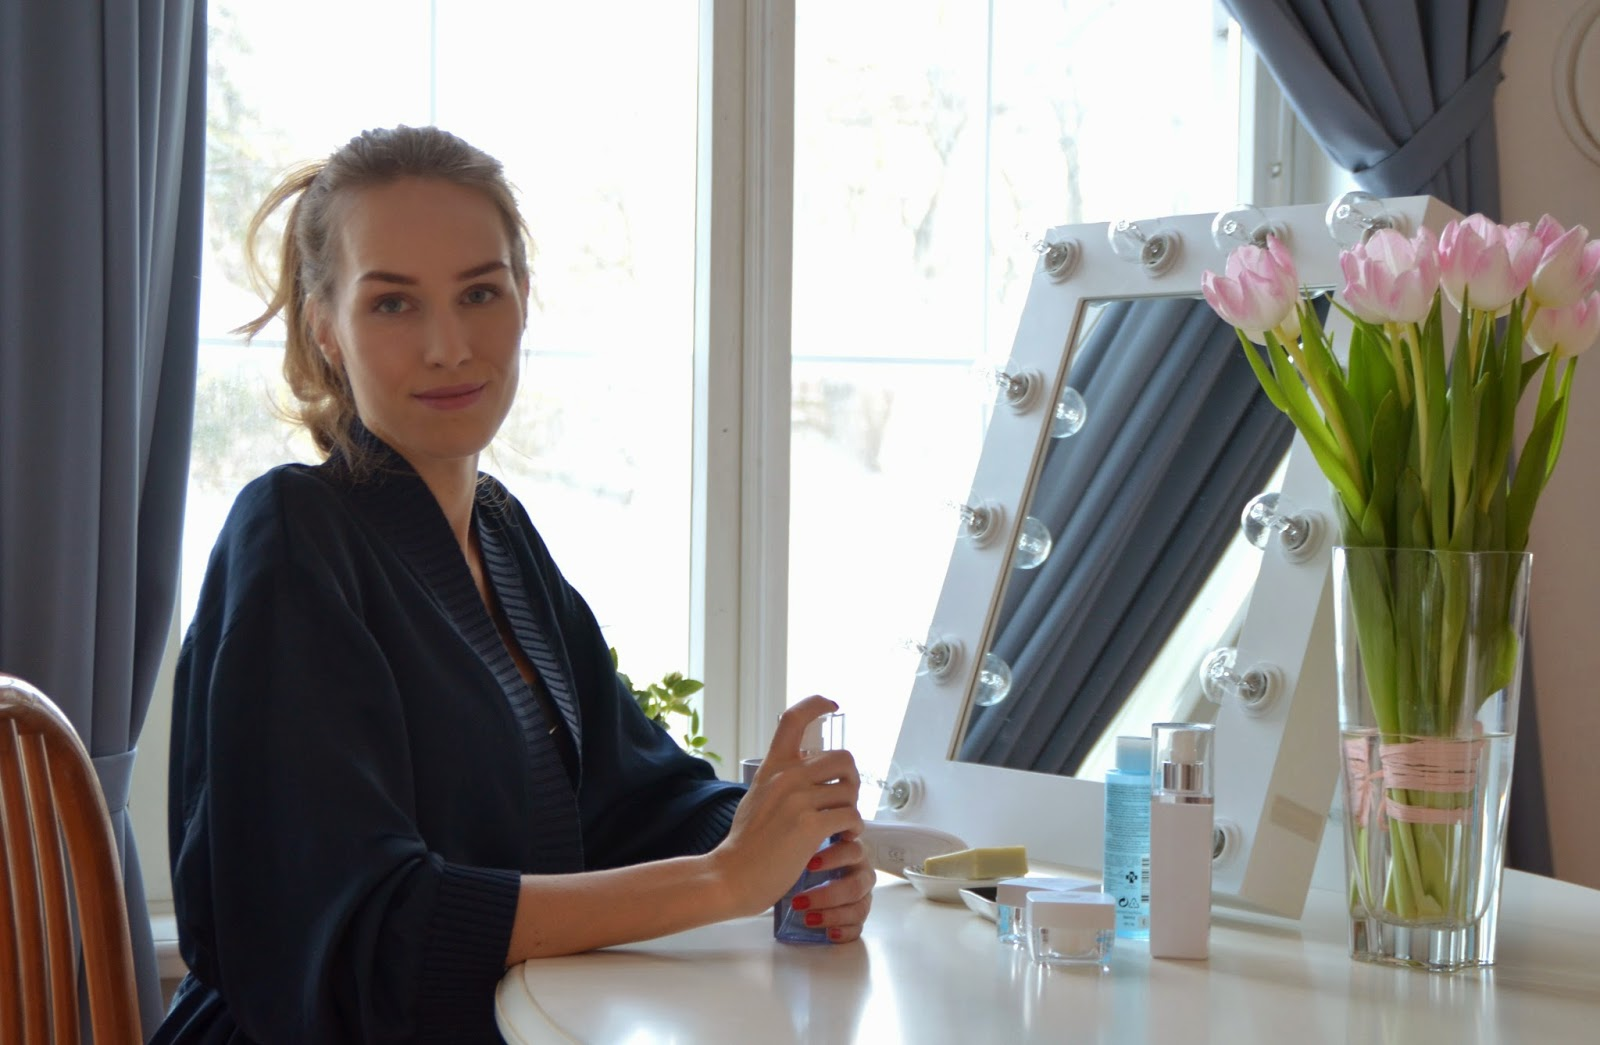 face-care-routine-natural-products kristjaana mere